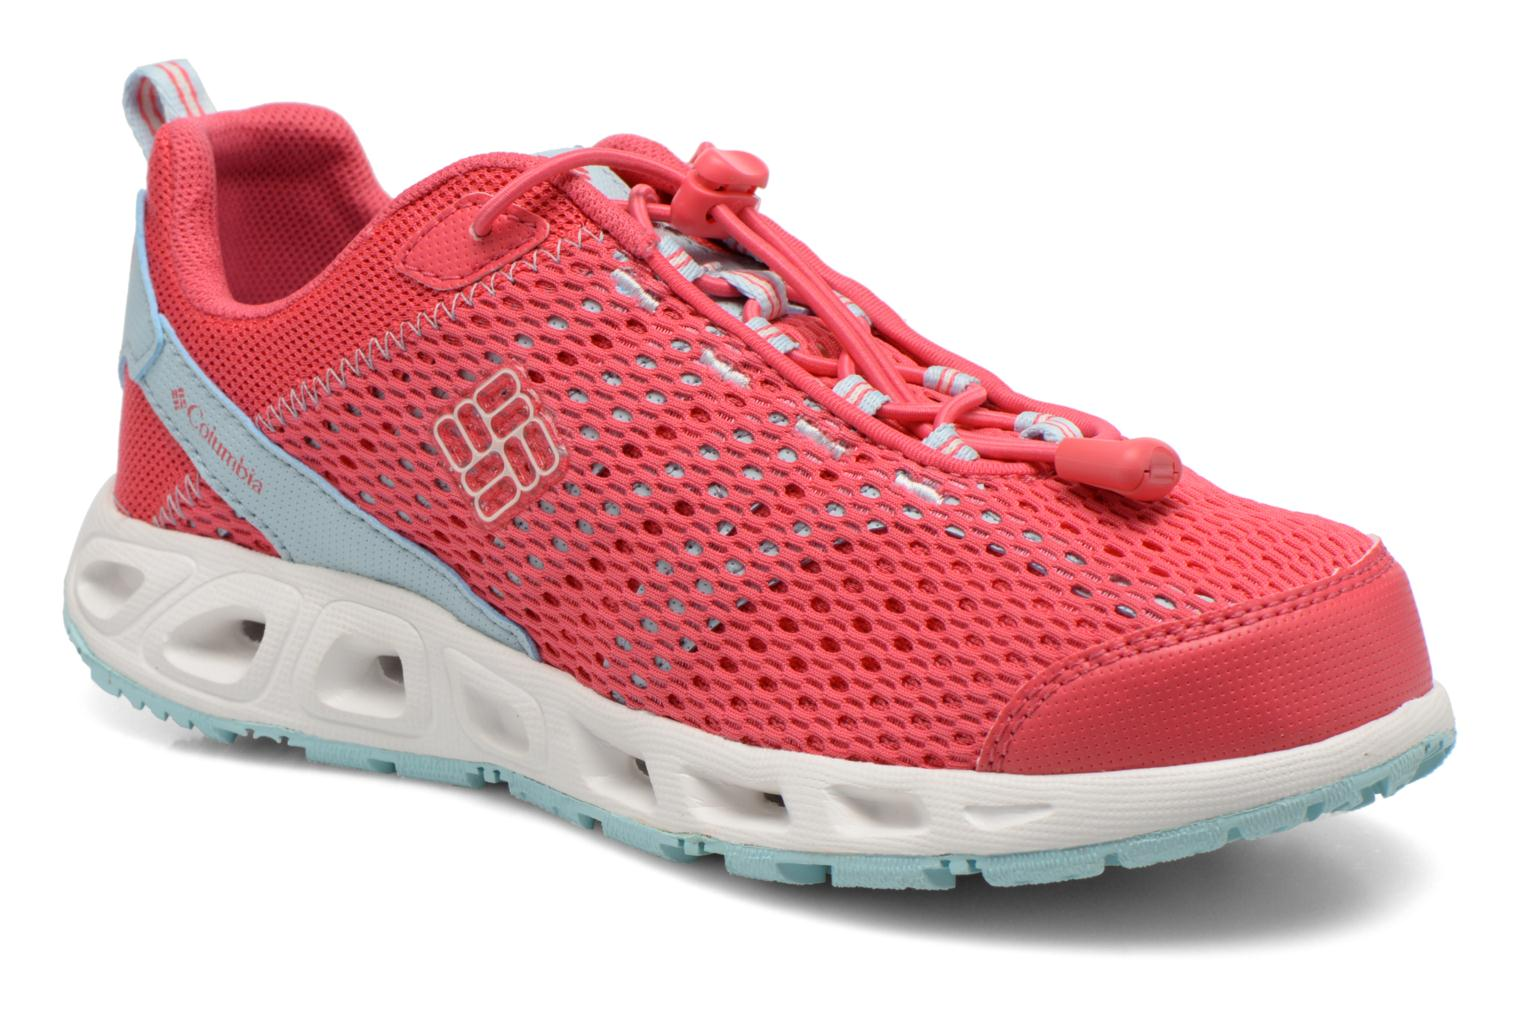 Chaussures de sport Columbia Youth Drainmaker III Rose vue détail/paire